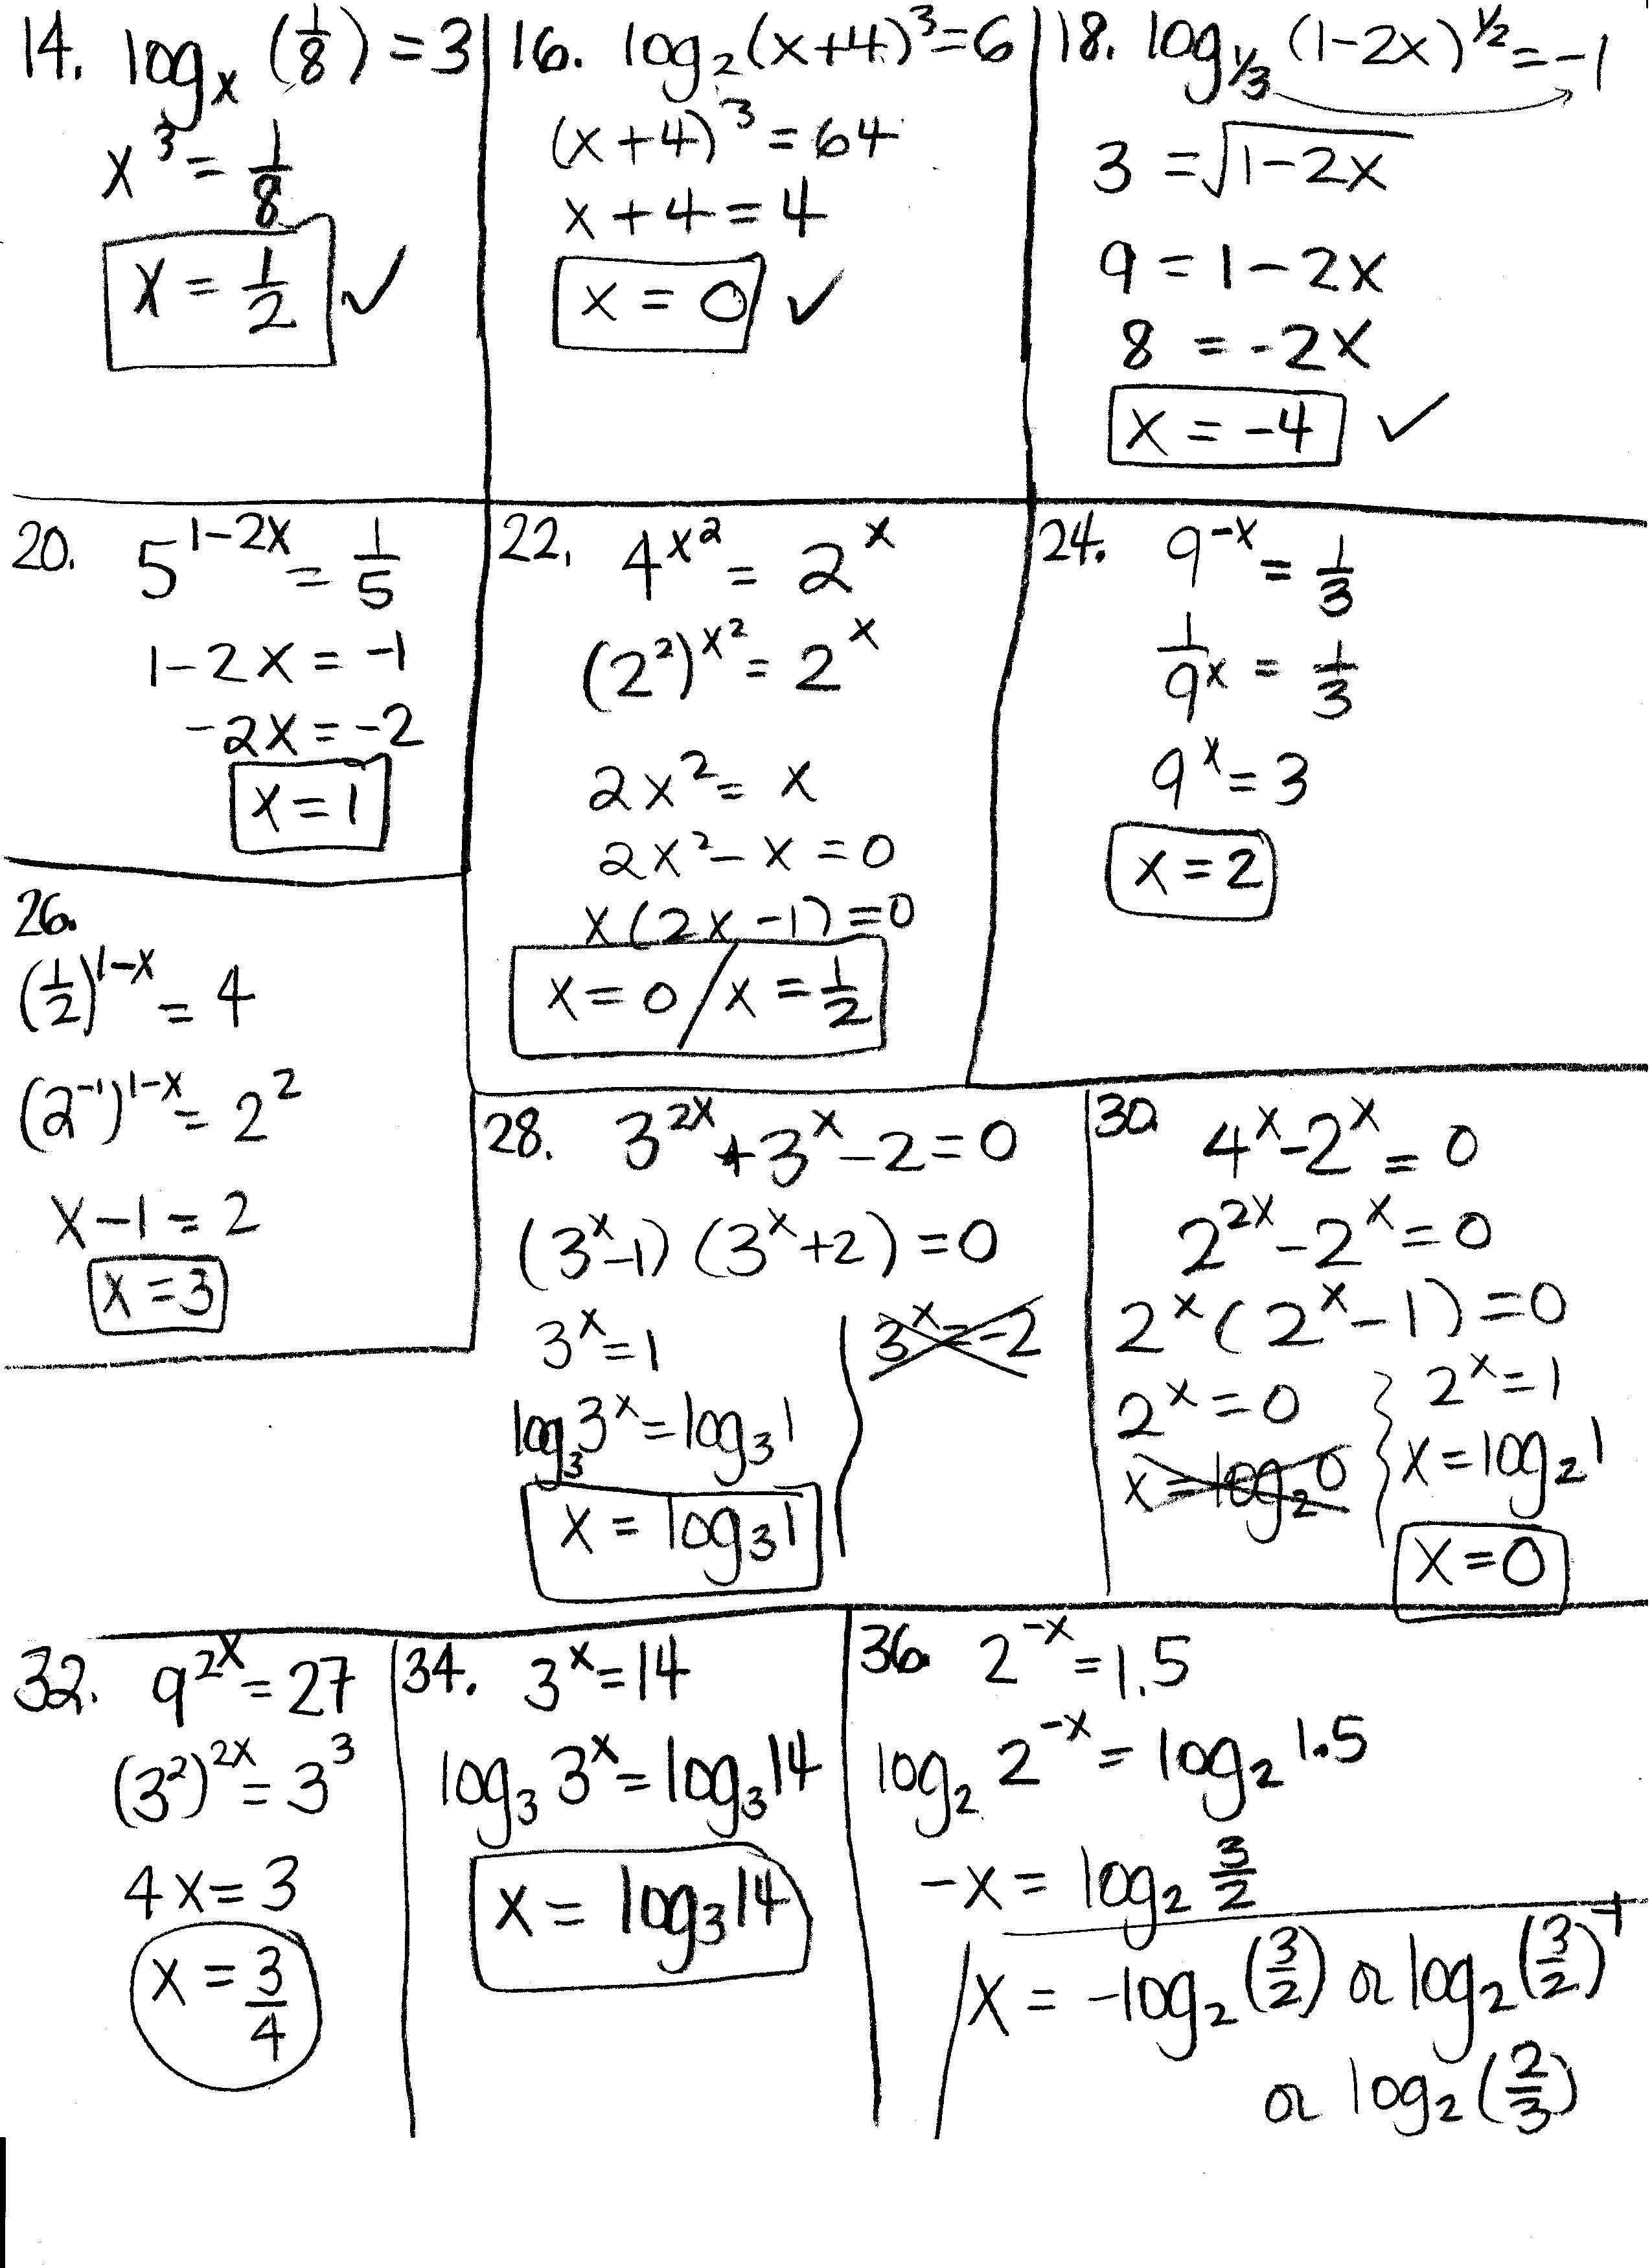 Eeaadaecfcddca Exponents And Logarithms Worksheet Stunning